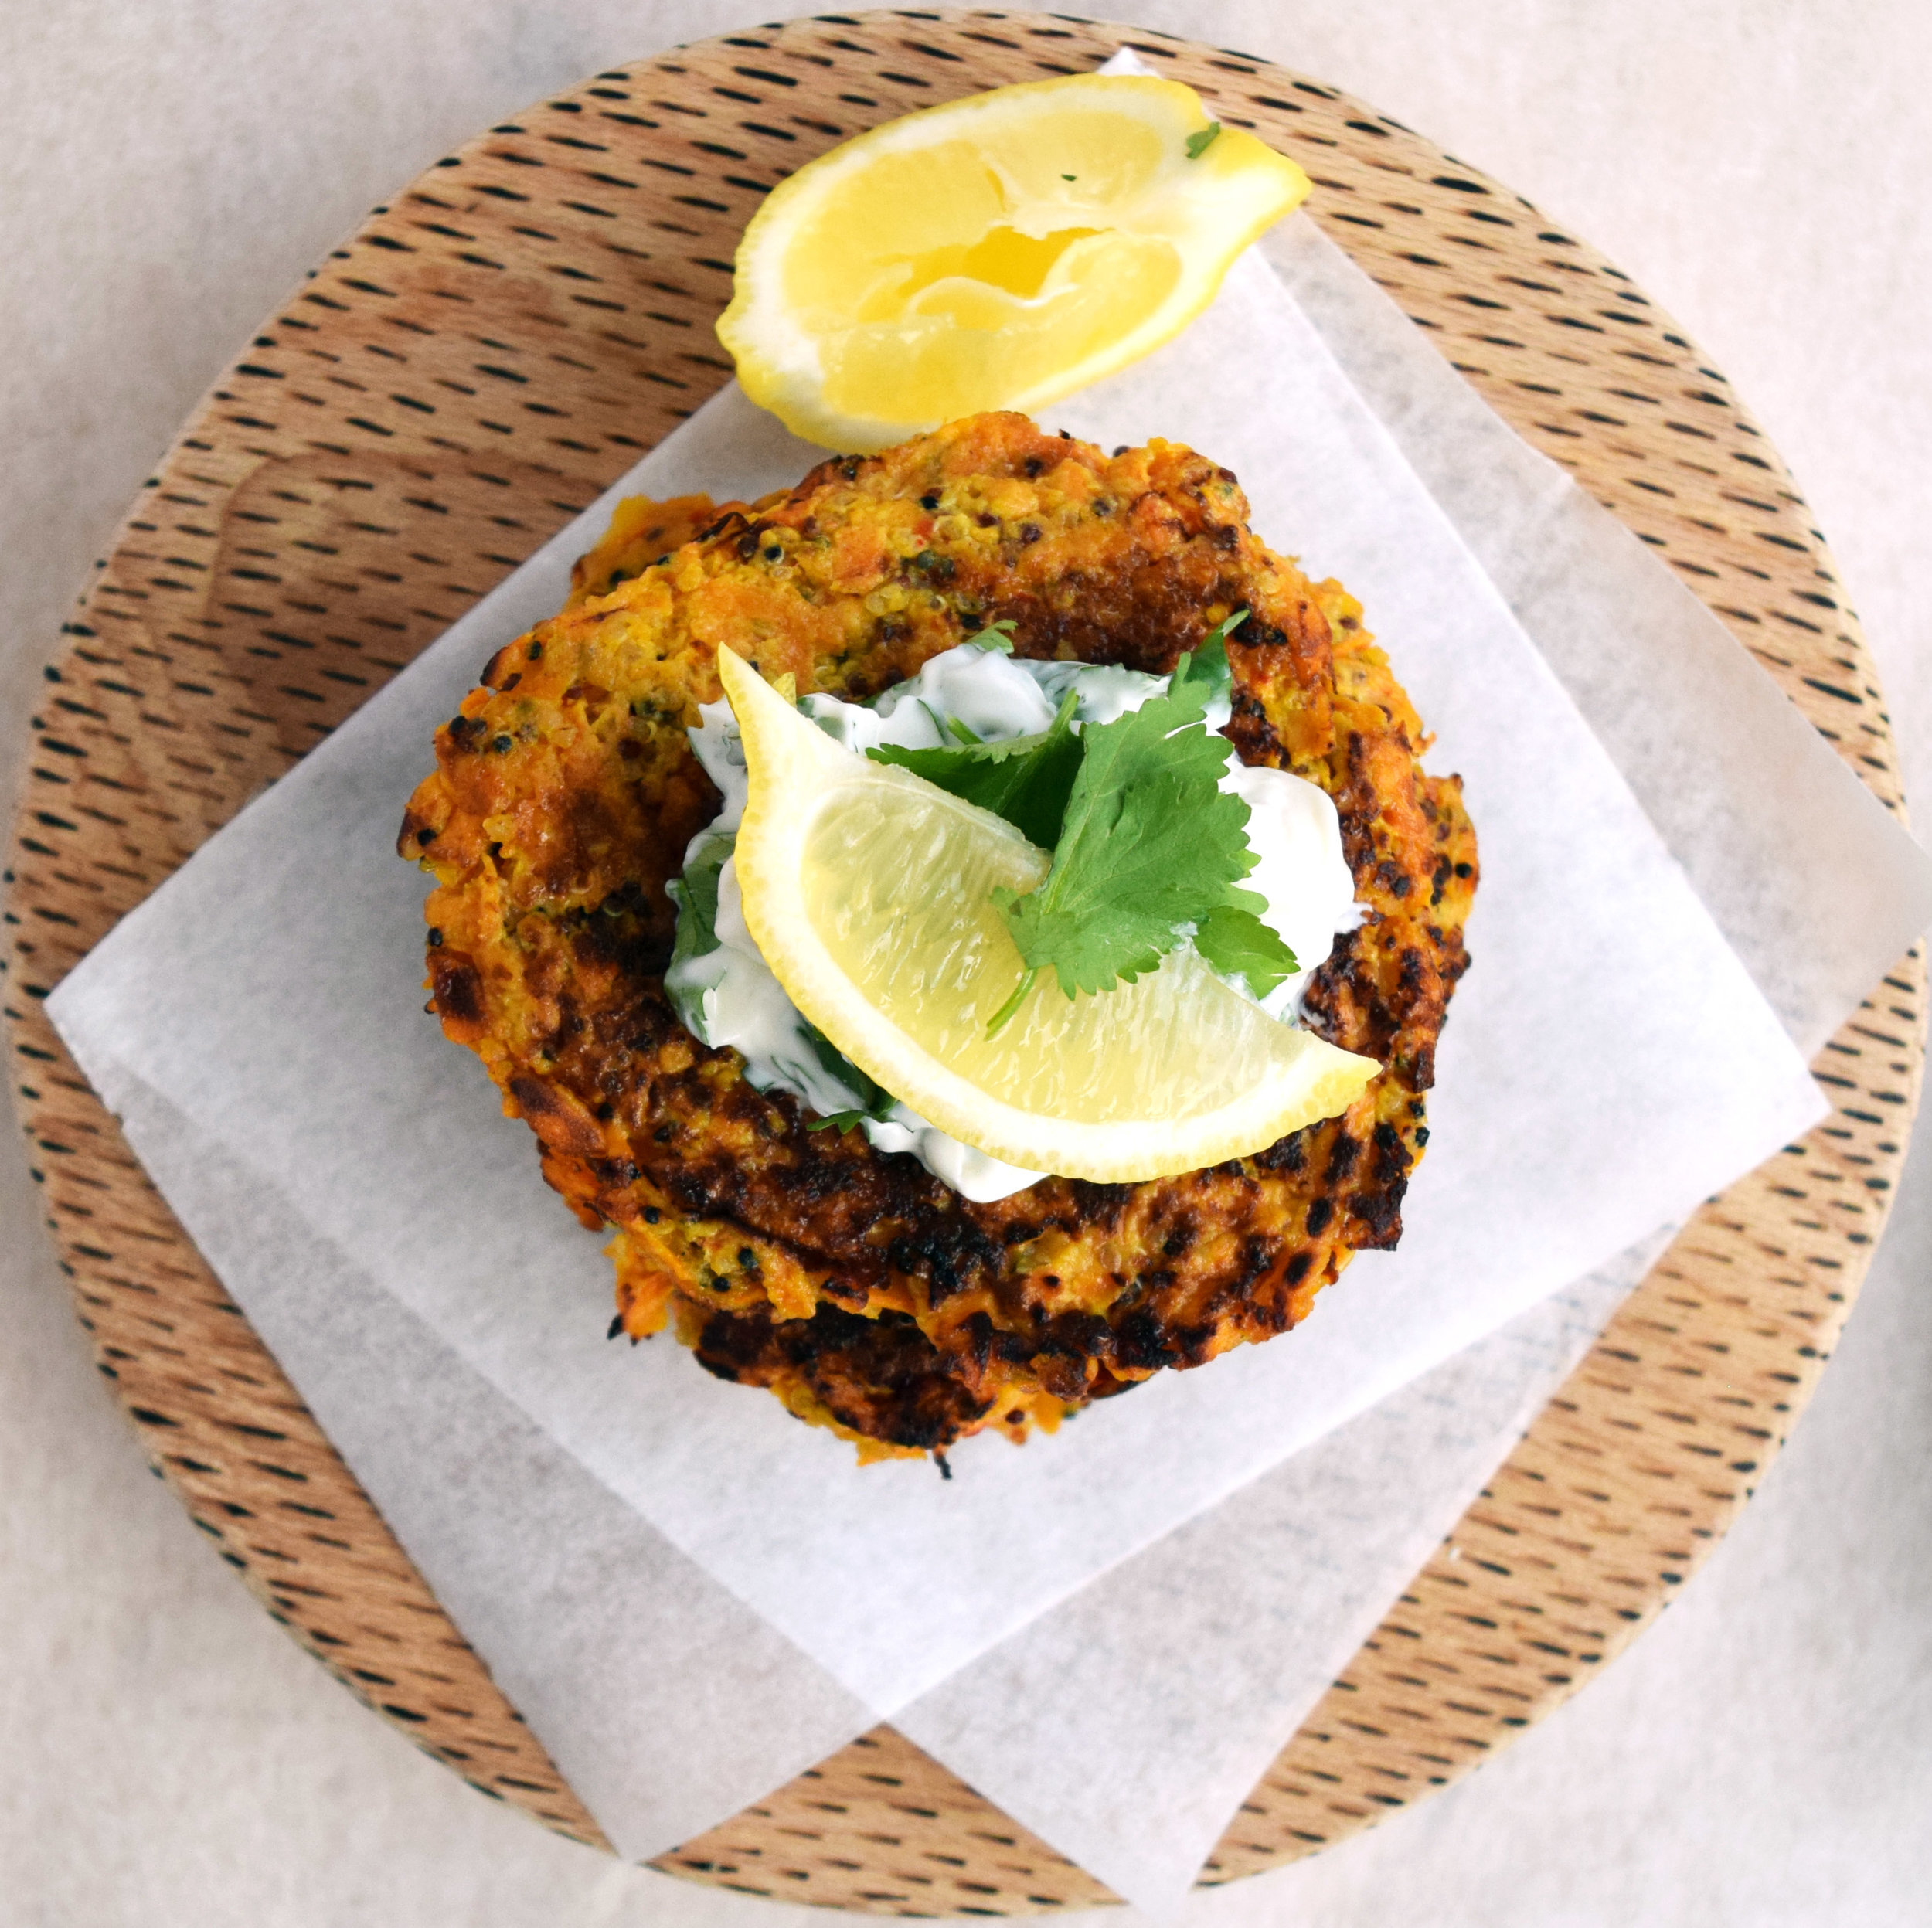 Tasty vegetable and quinoa fritters with lemon herb mayo.